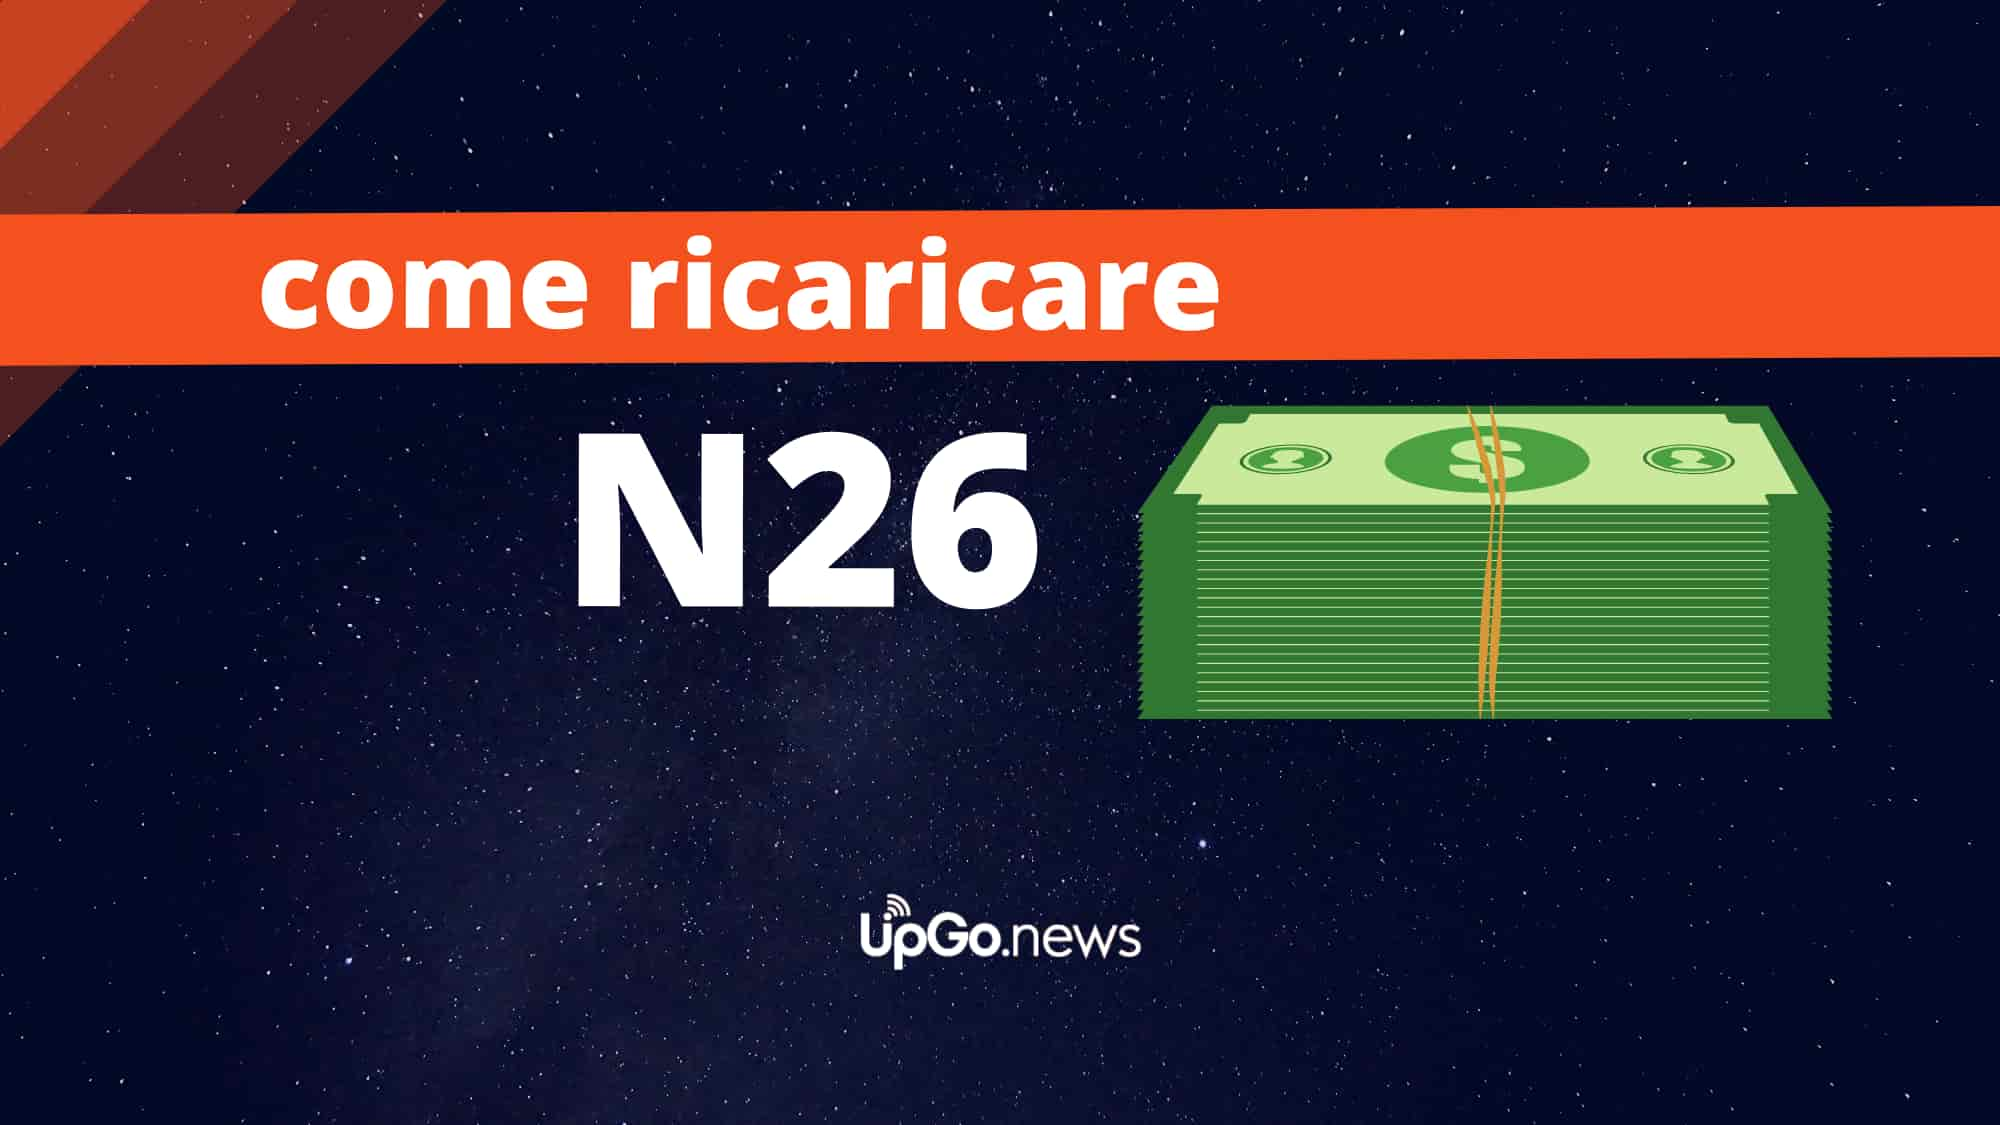 Come ricaricare N26